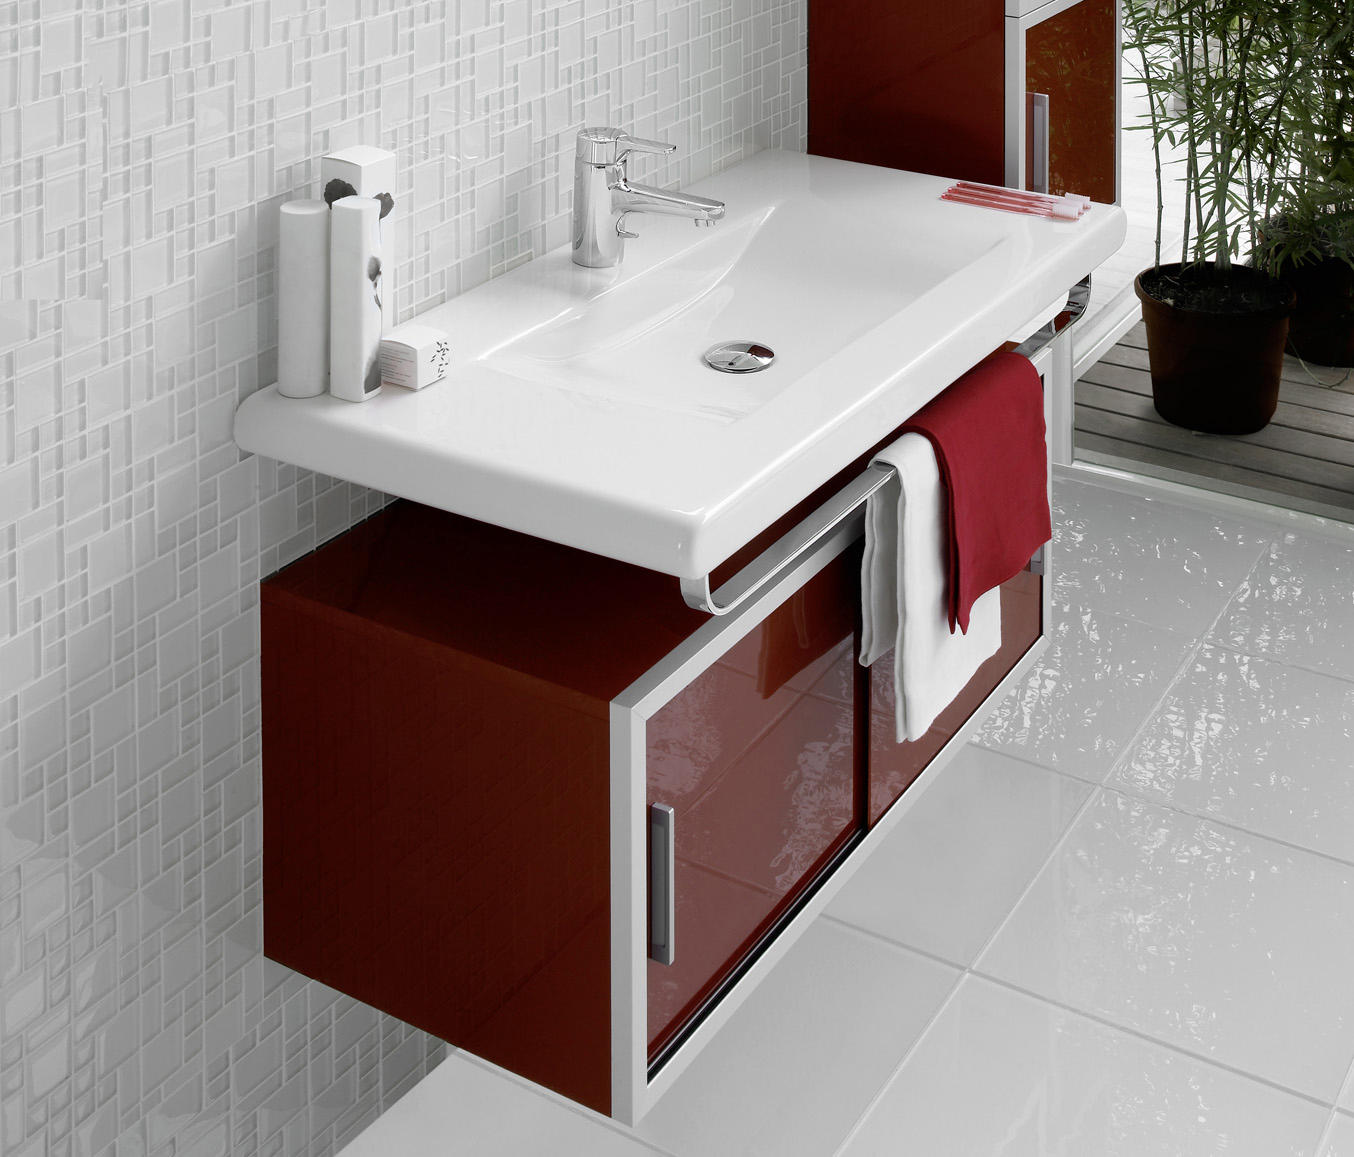 living style countertop washbasin wash basins from laufen architonic. Black Bedroom Furniture Sets. Home Design Ideas